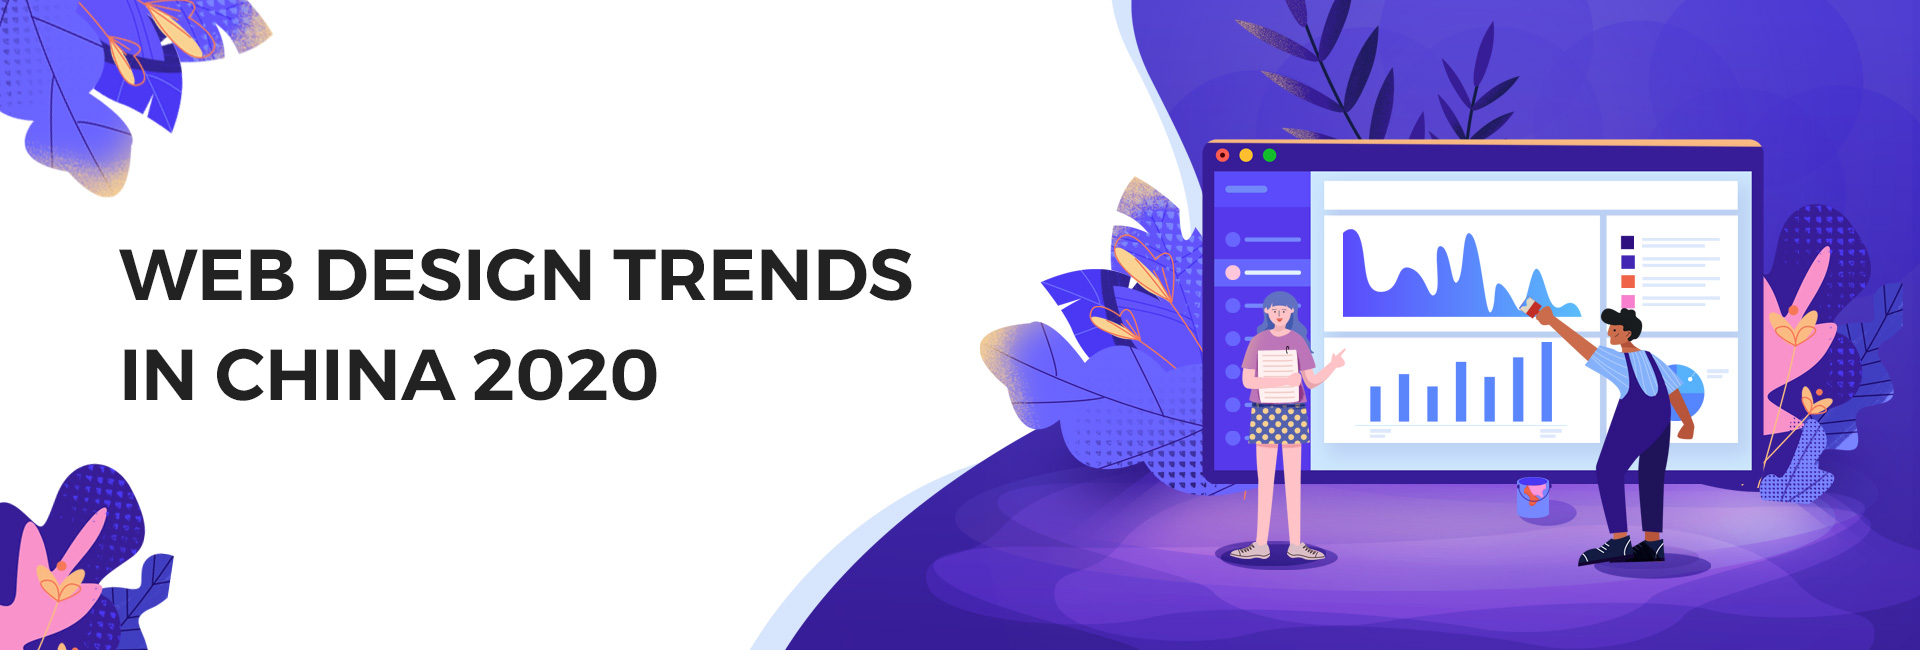 web design trends in china 2020